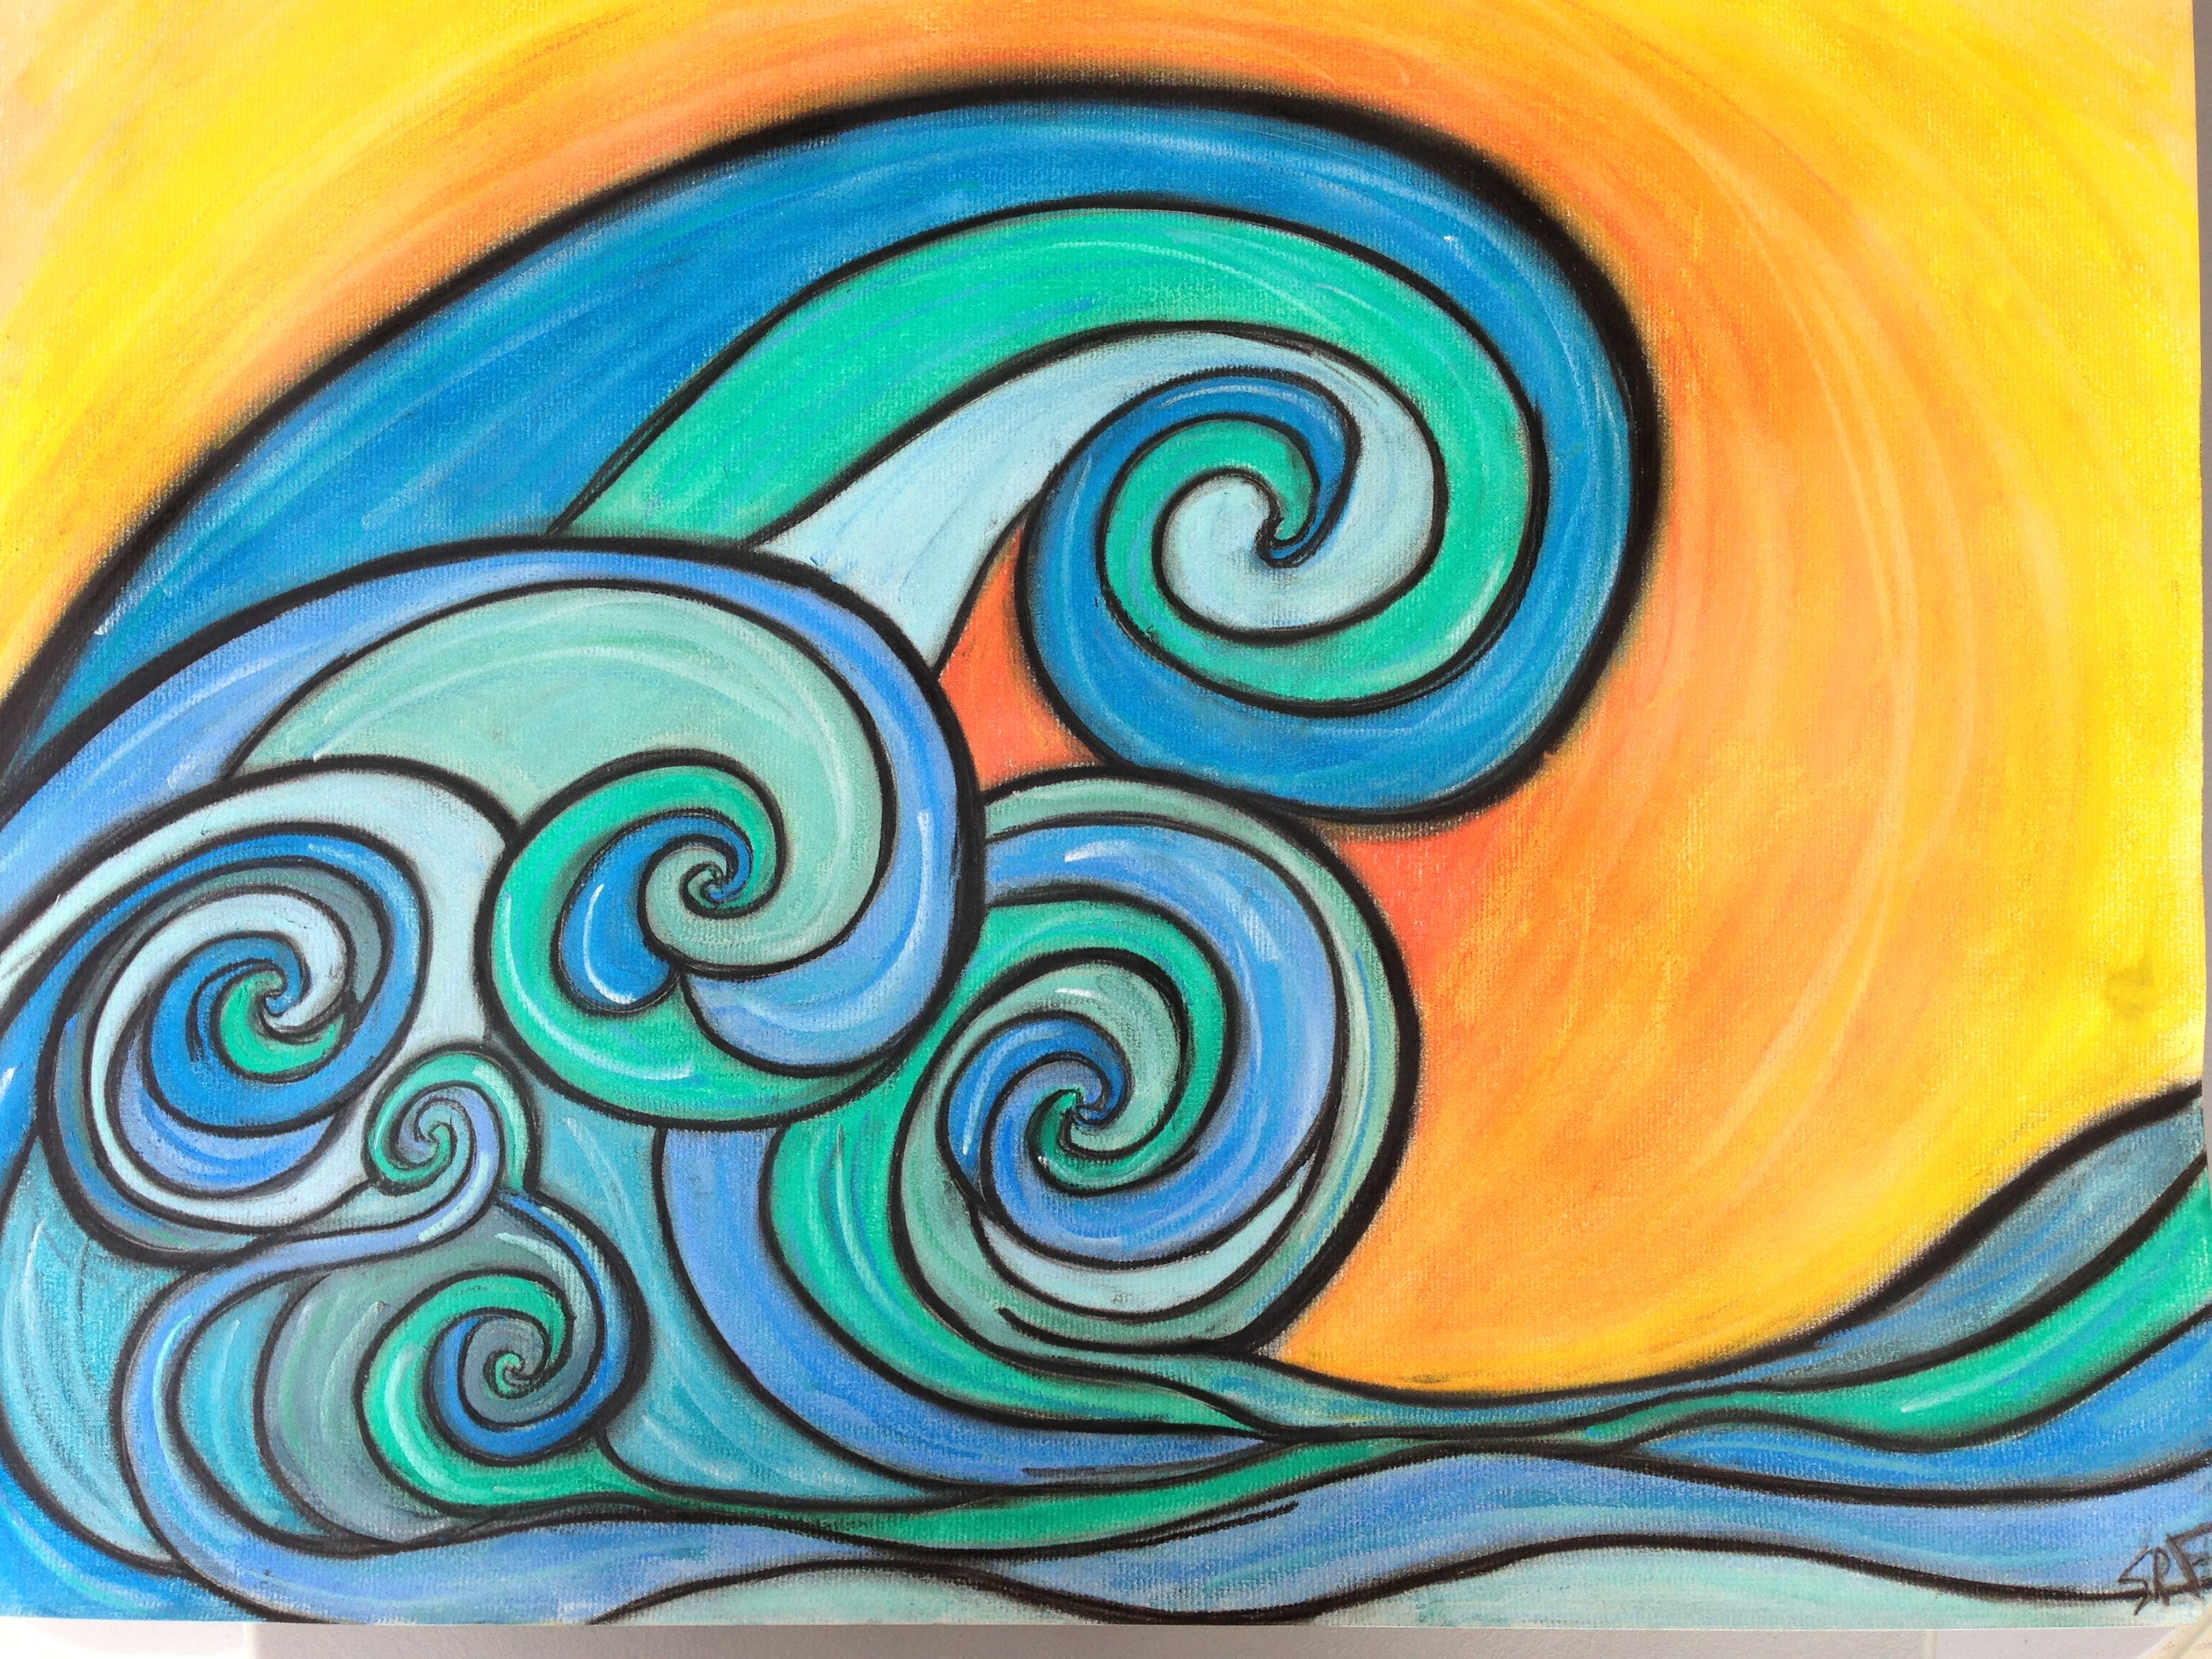 Waves By S Rsh